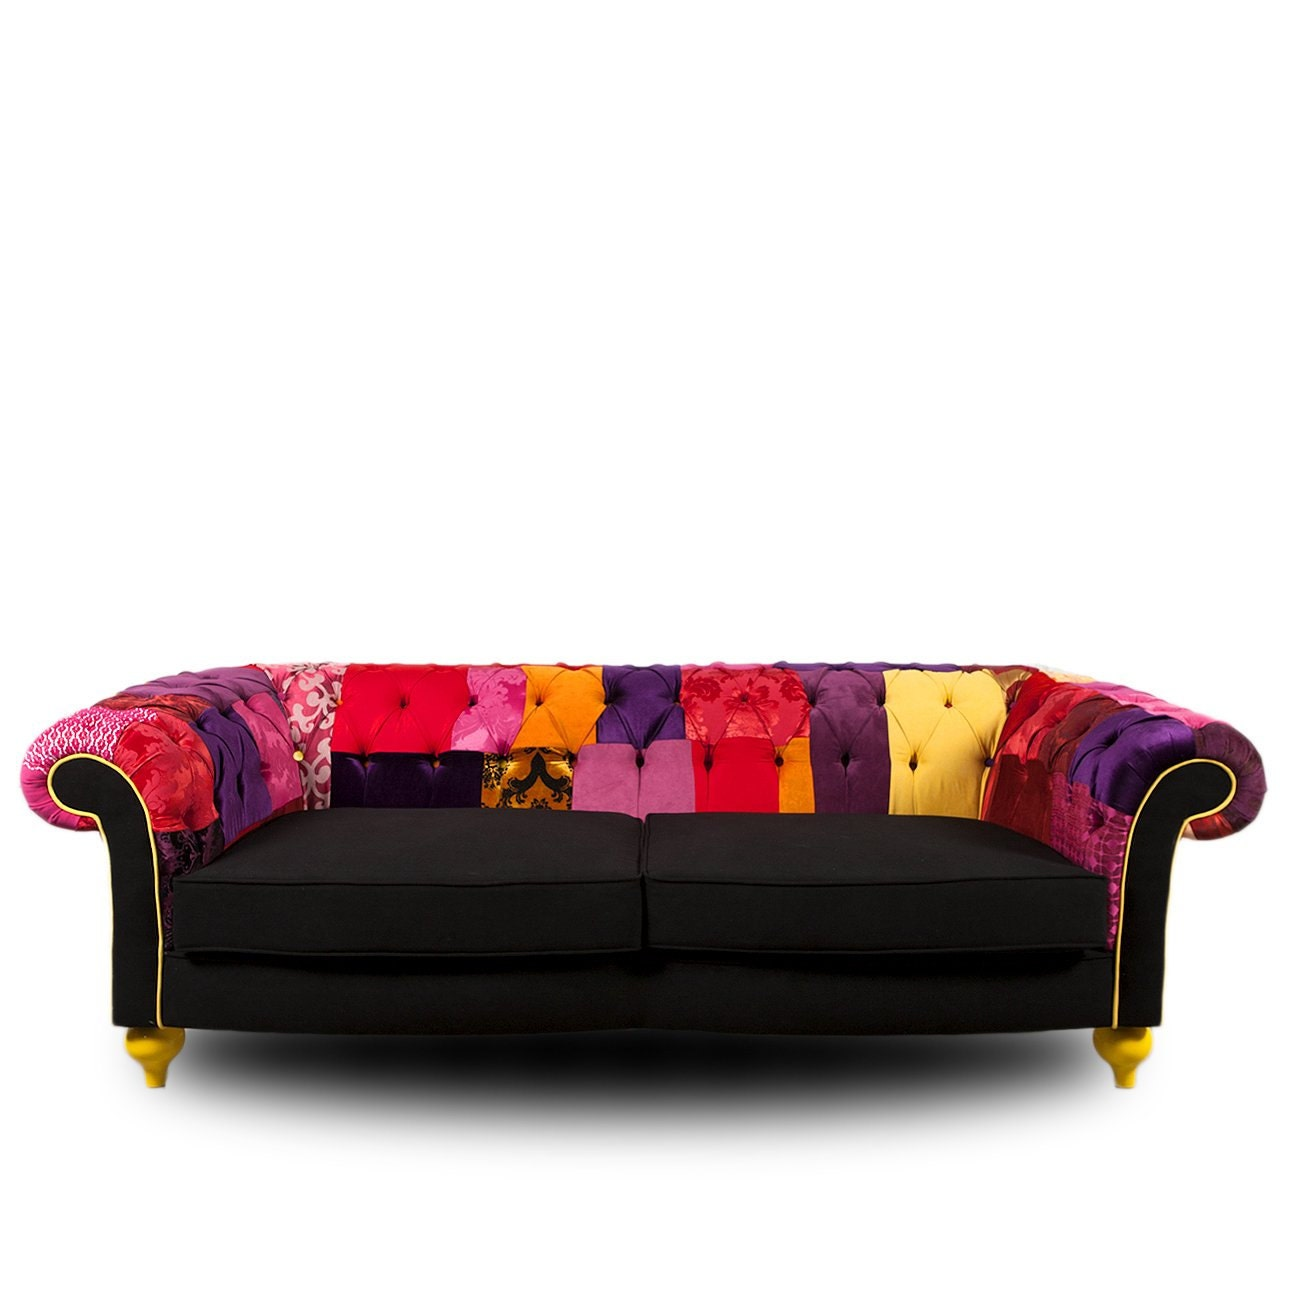 Patchwork 39 chesterfield 39 sofa for Sofa patchwork